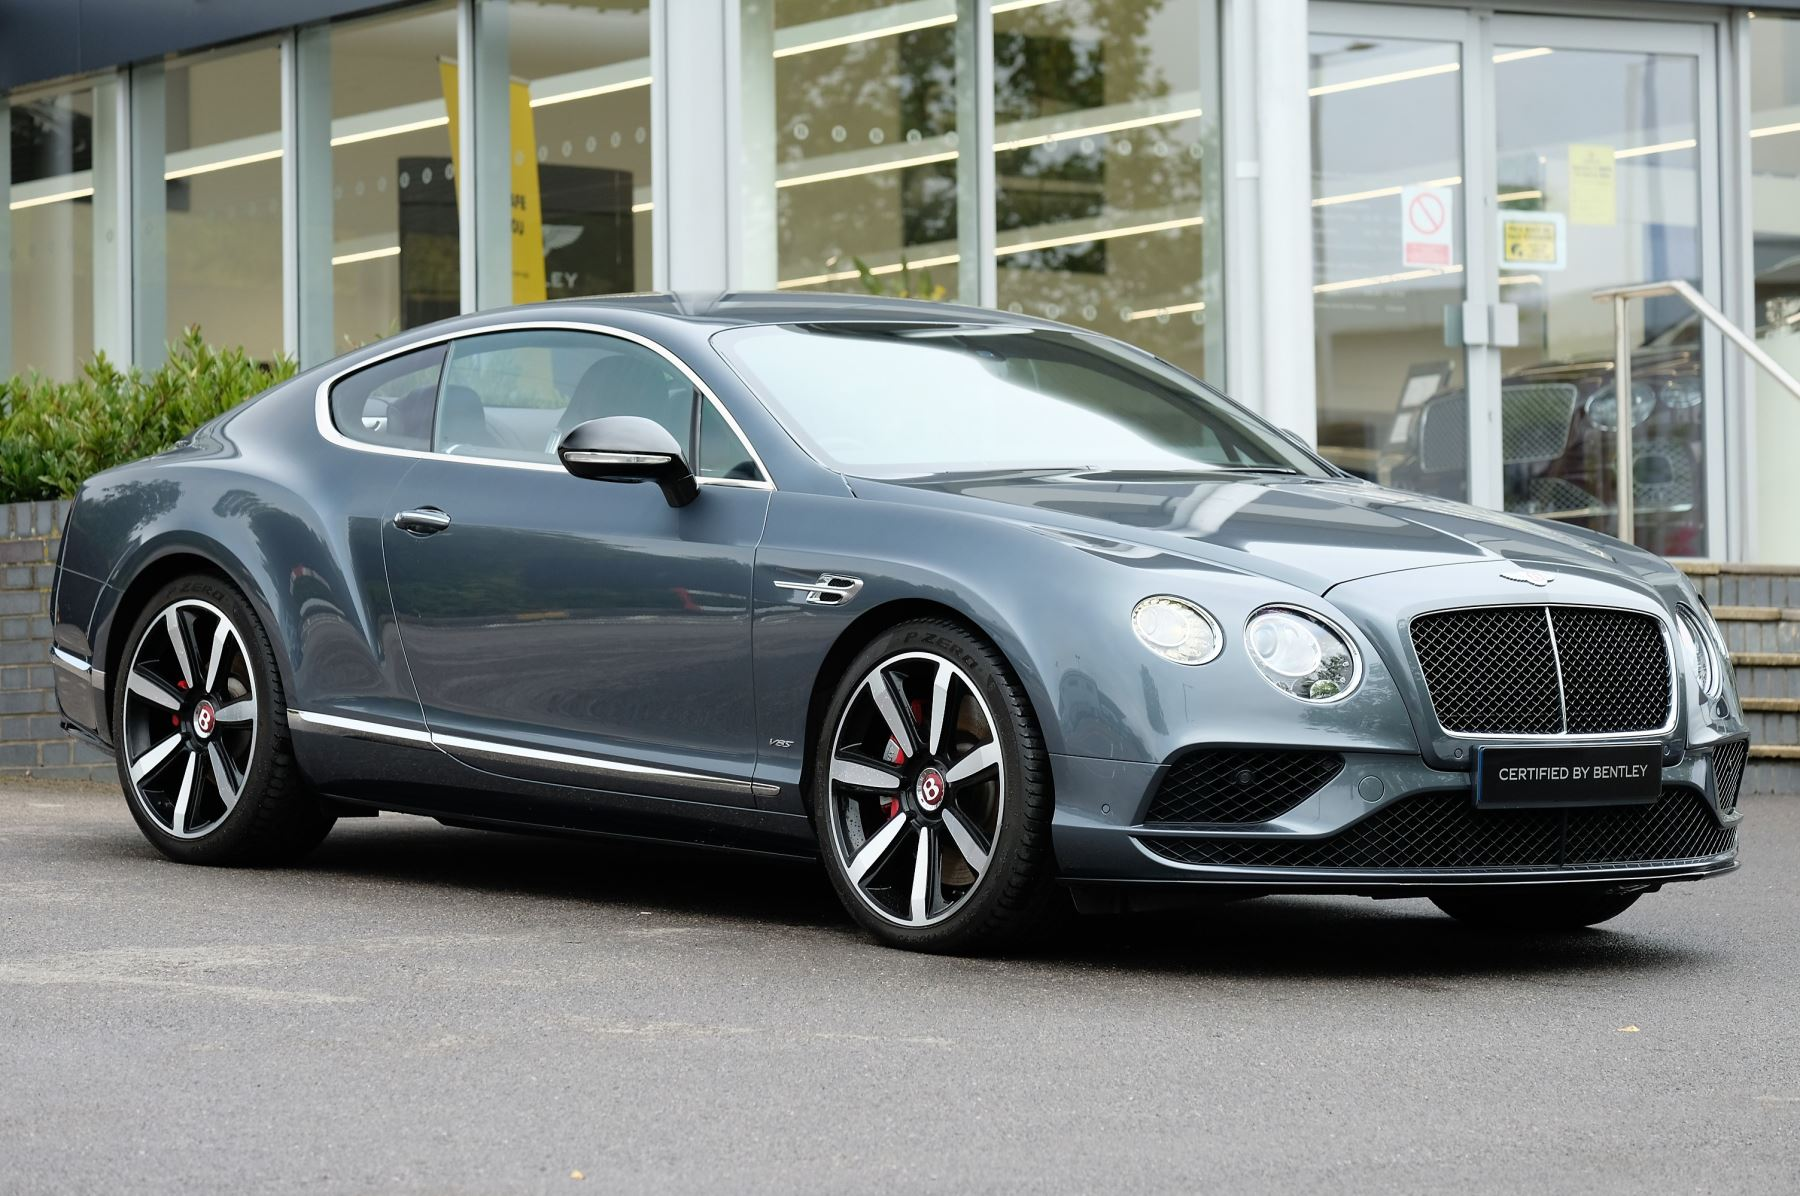 Bentley Continental GT 4.0 V8 S Mulliner Driving Spec 2dr Automatic Coupe (2017)